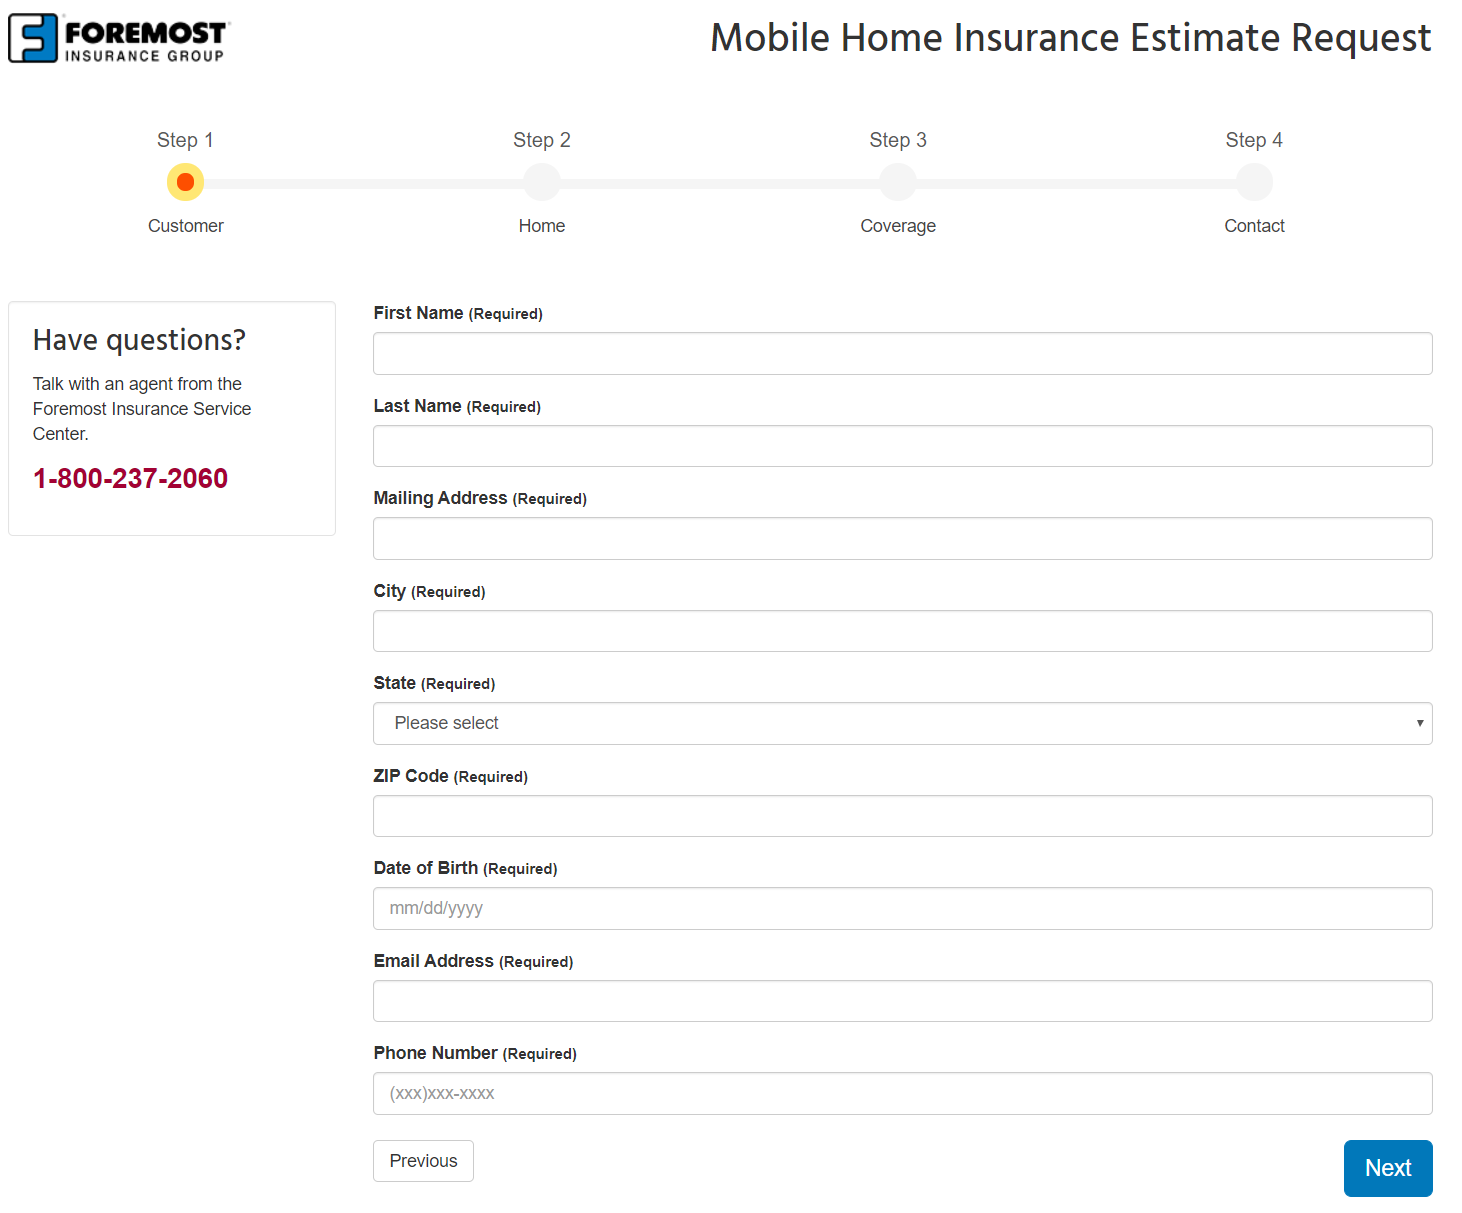 Foremost Insurance Group mobile home insurance quote - personal information screen